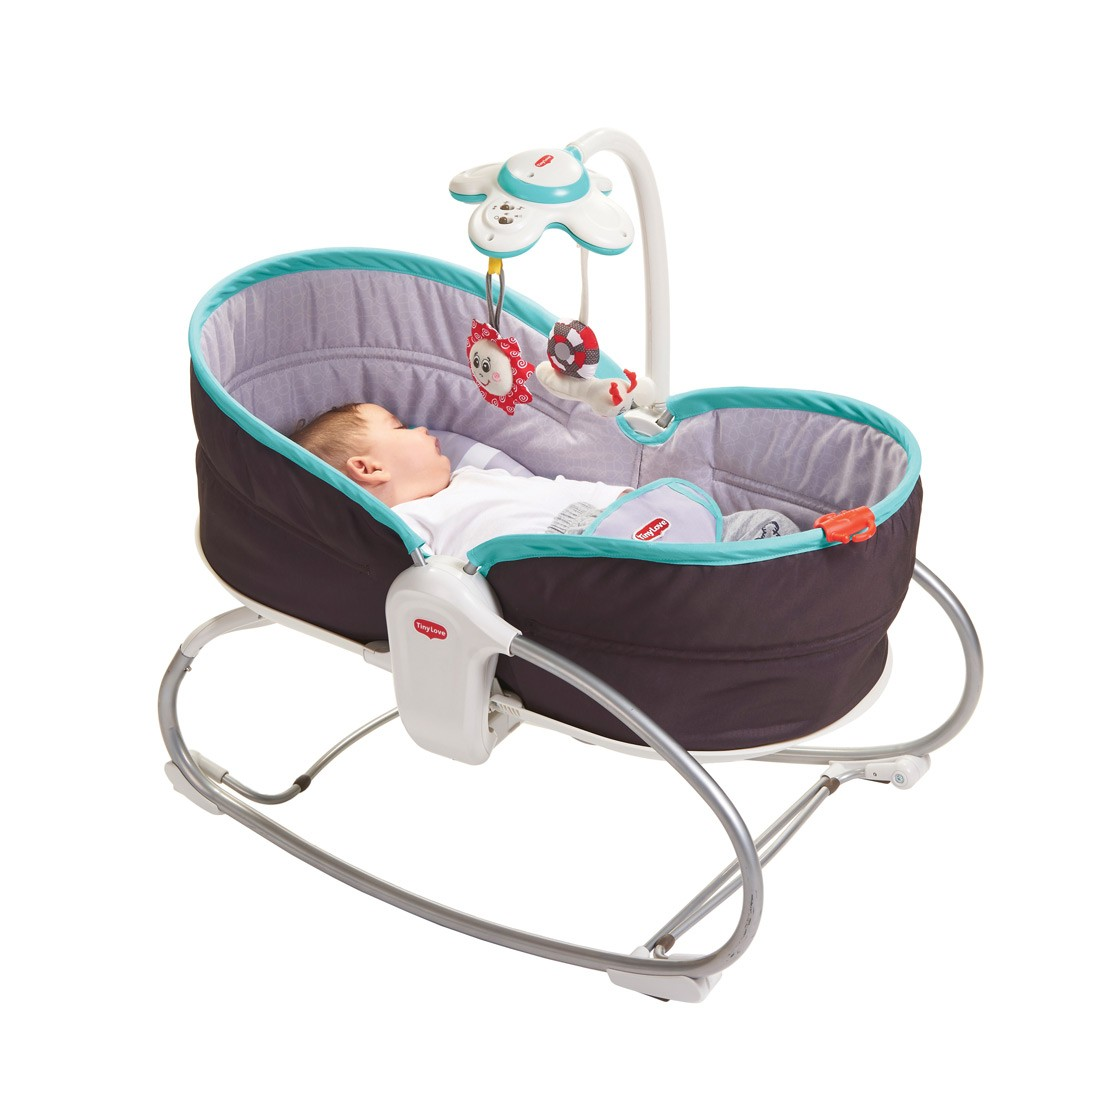 baby chair that vibrates loose covers ready made ireland tiny love 3 in 1 rocking vibrating bouncy moses basket